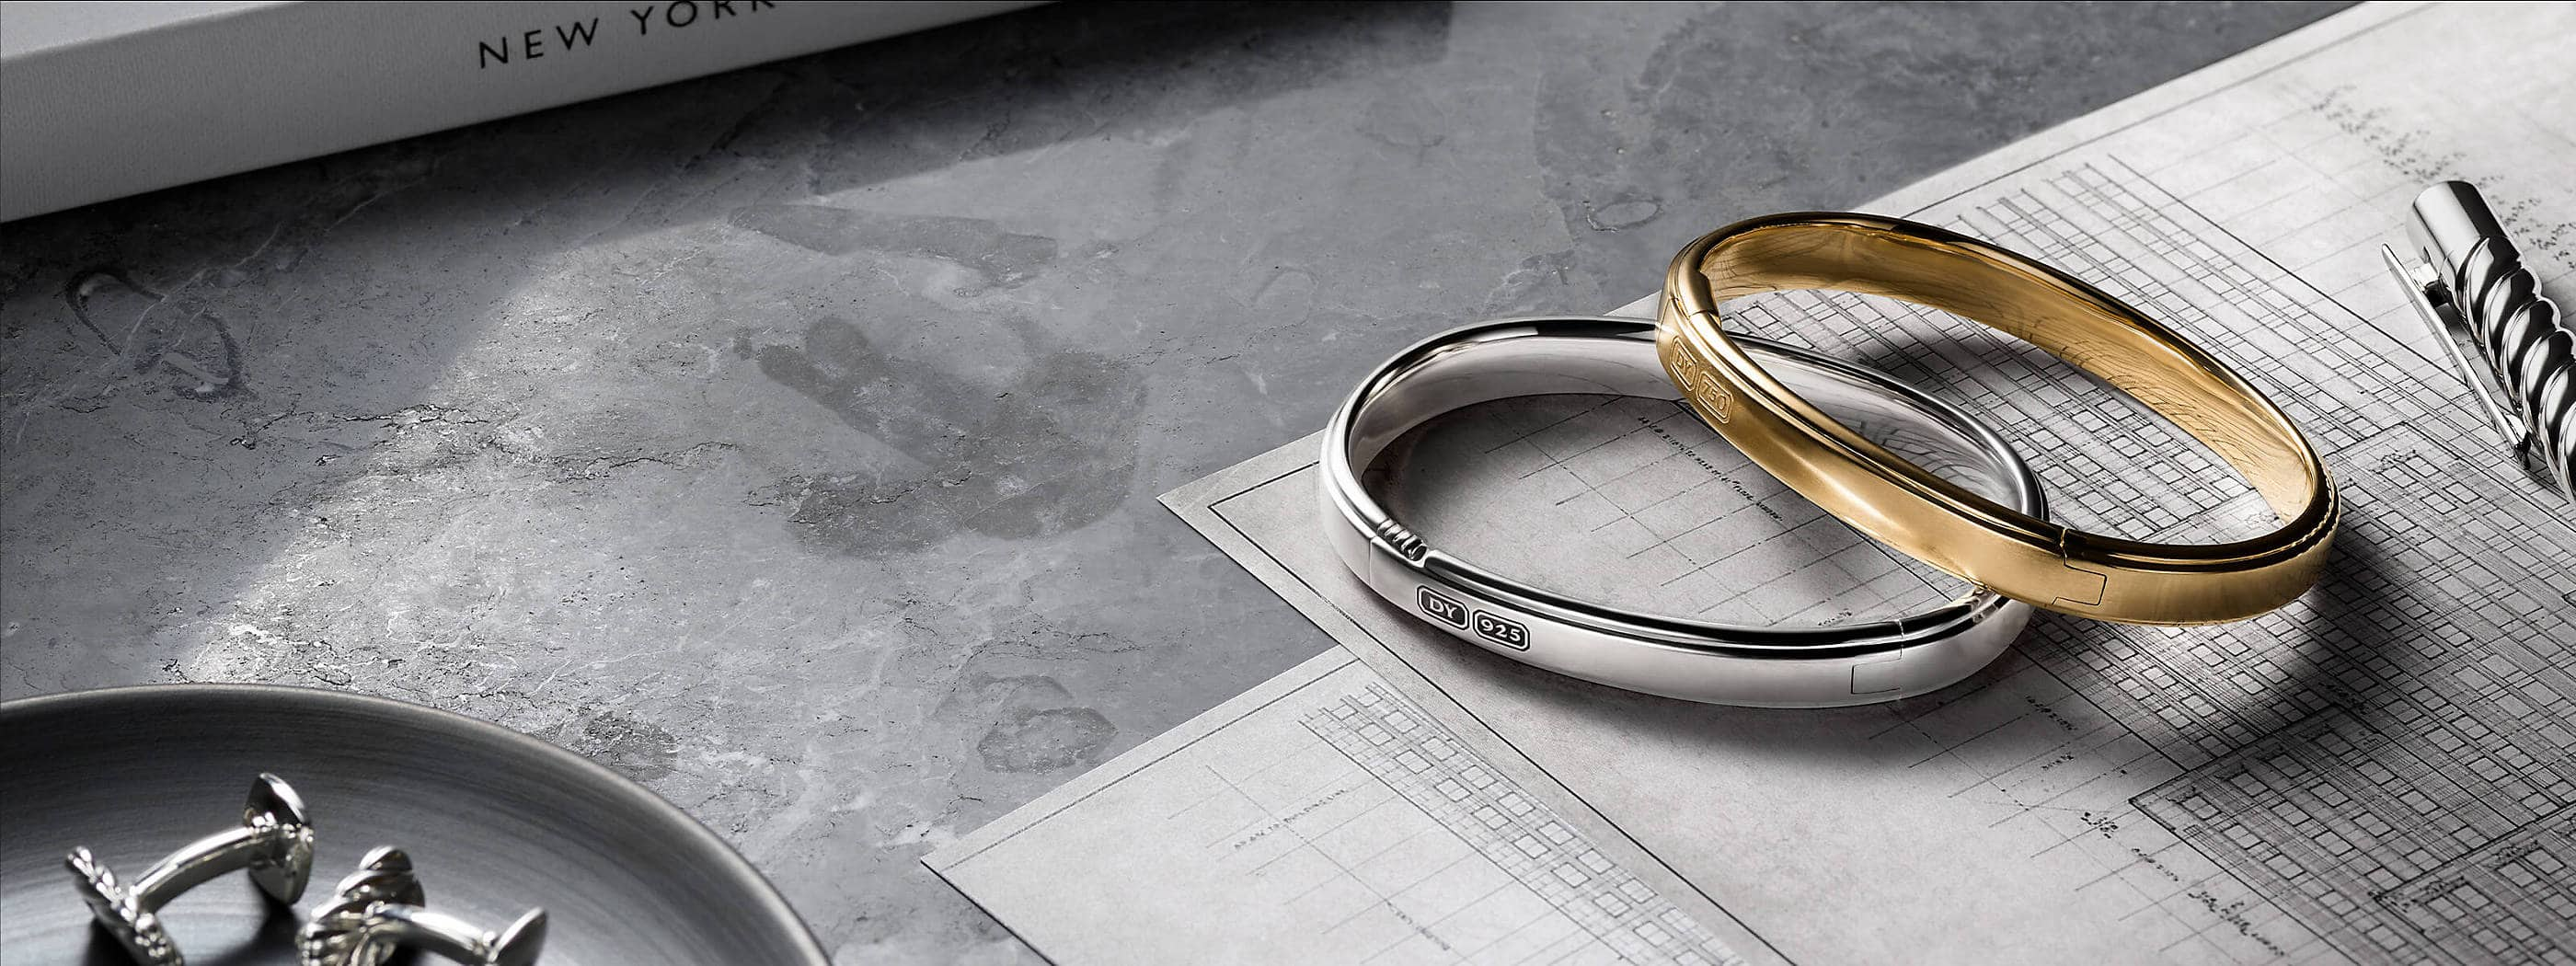 A color photo shows two David Yurman men's cuff bracelets atop architectural blueprints scattered on a grey marble surface. One bracelet is crafted from sterling silver while the other is crafted from 18K yellow gold. A grey book about New York, a sterling silver David Yurman Cable pen and a pair of David Yurman sterling silver cufflinks on a grey dish surround the bracelets.